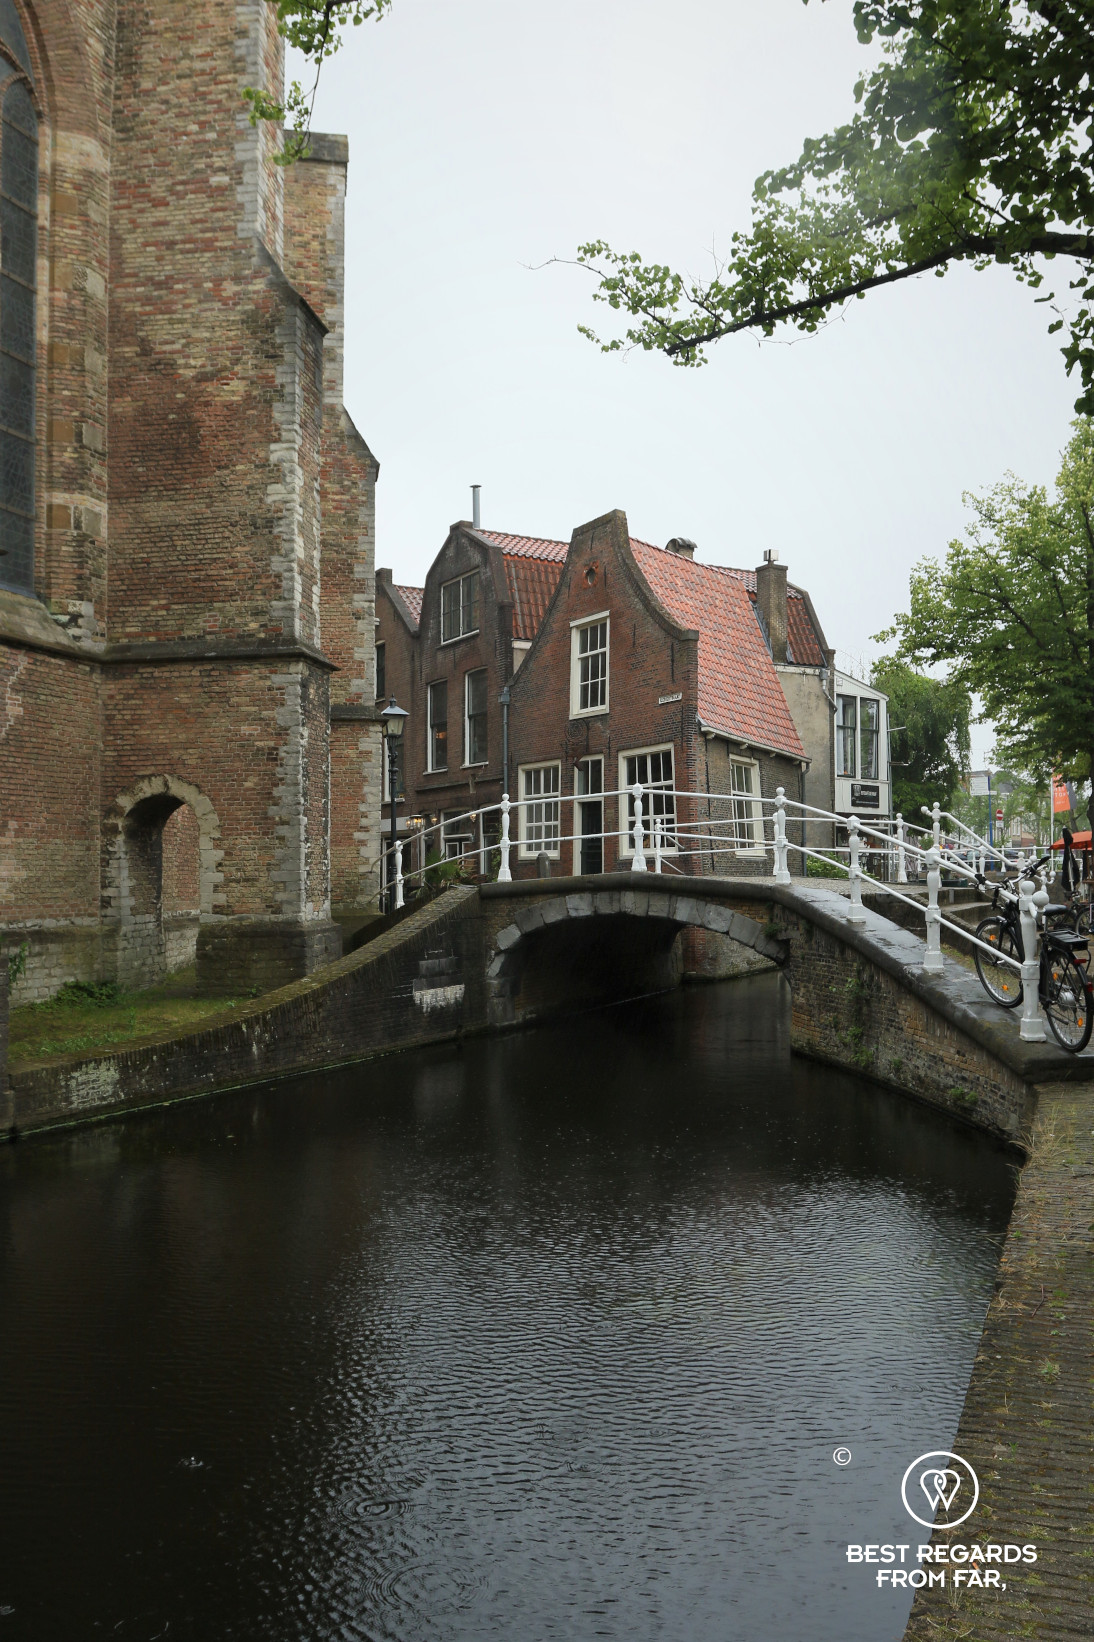 Old houses along a cute canal in Delft, The Netherlands